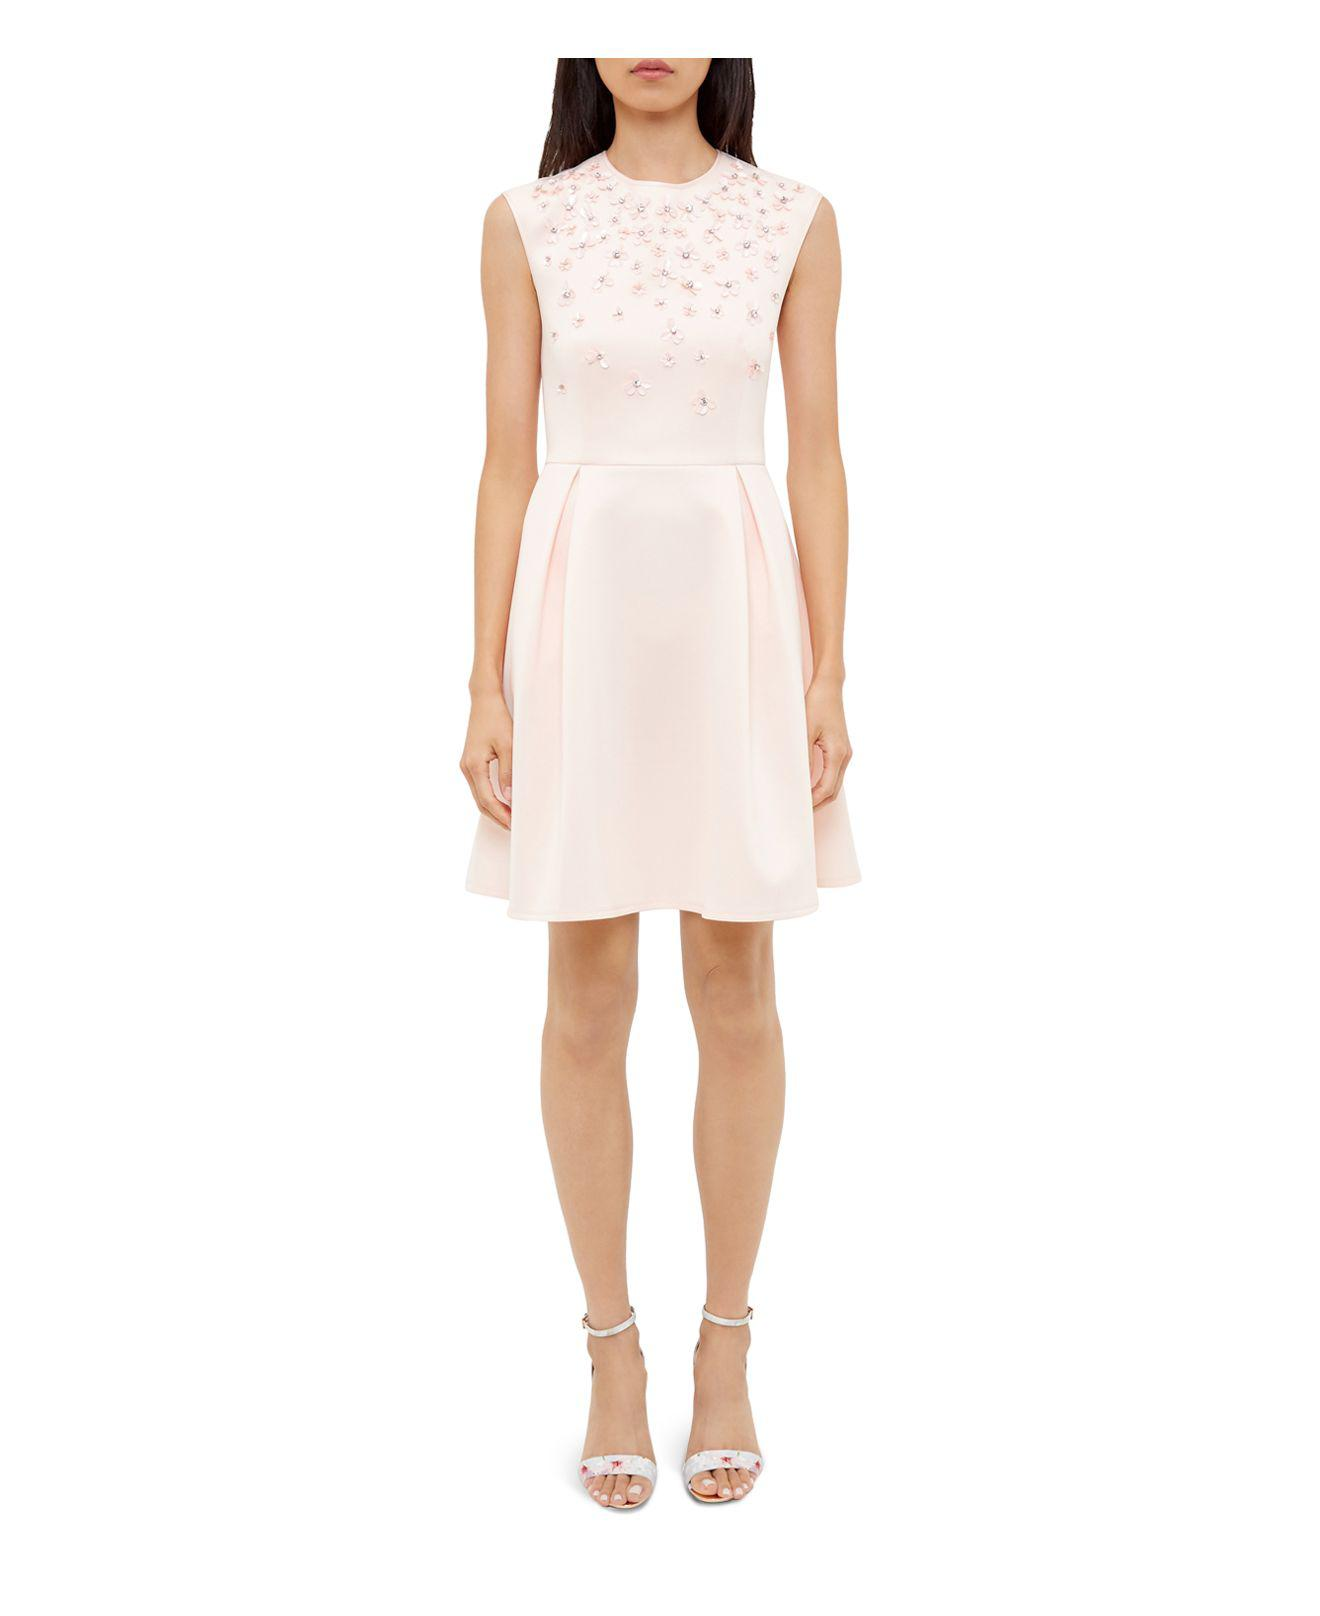 13c4104f939bf Gallery. Previously sold at  Bloomingdale s · Women s Skater Dresses ...